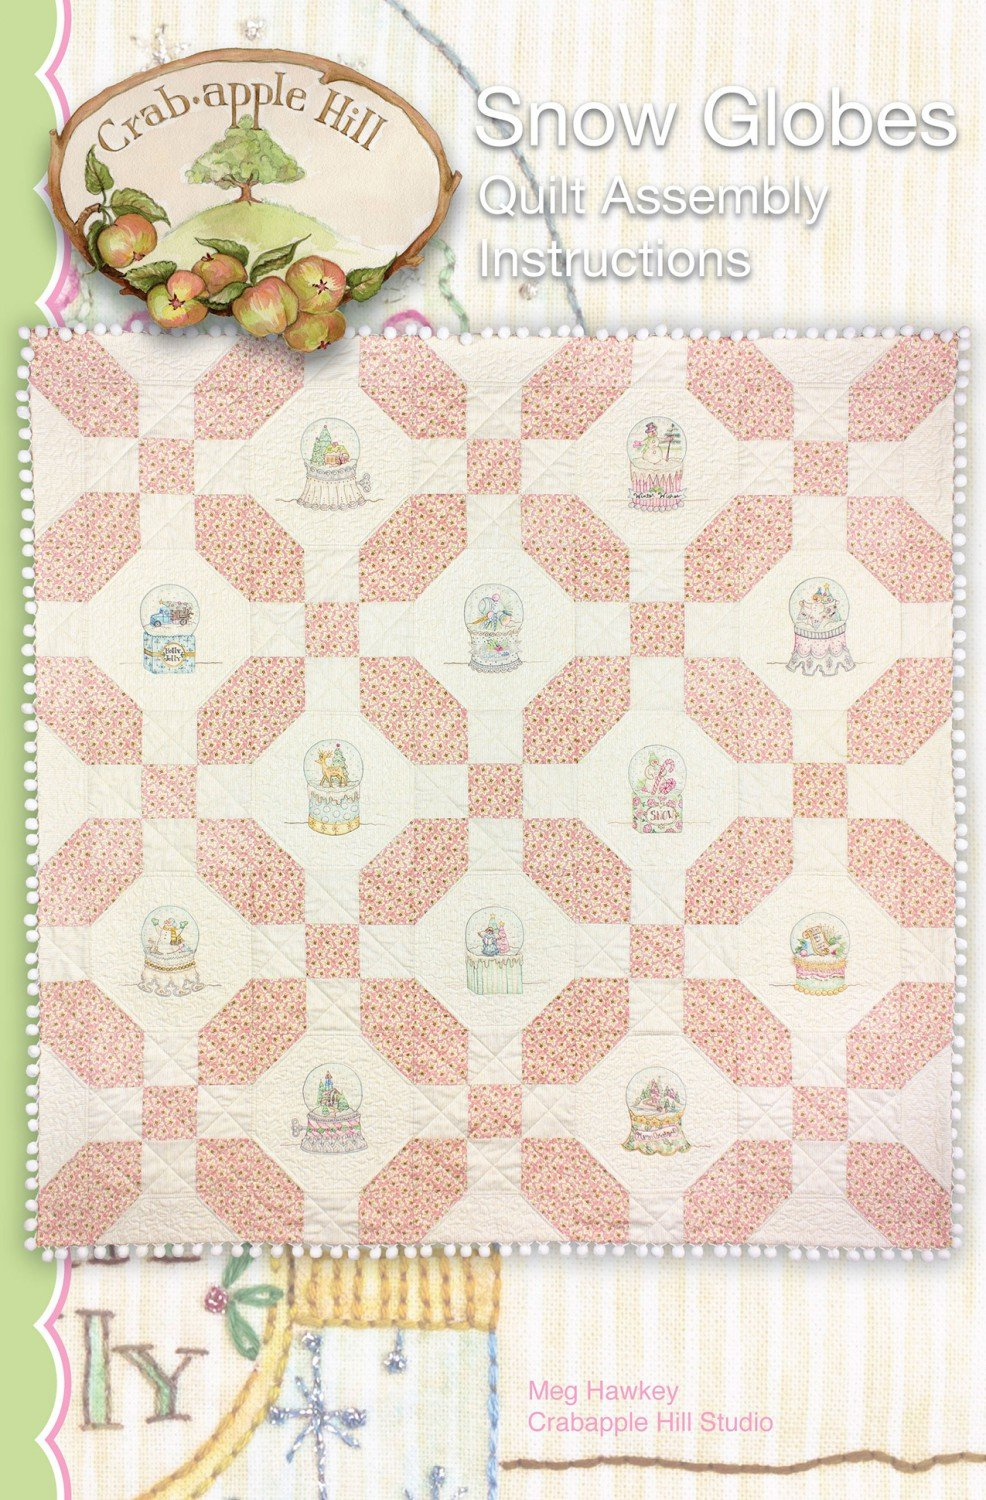 Snow Globes Quilt Assembly Instructions